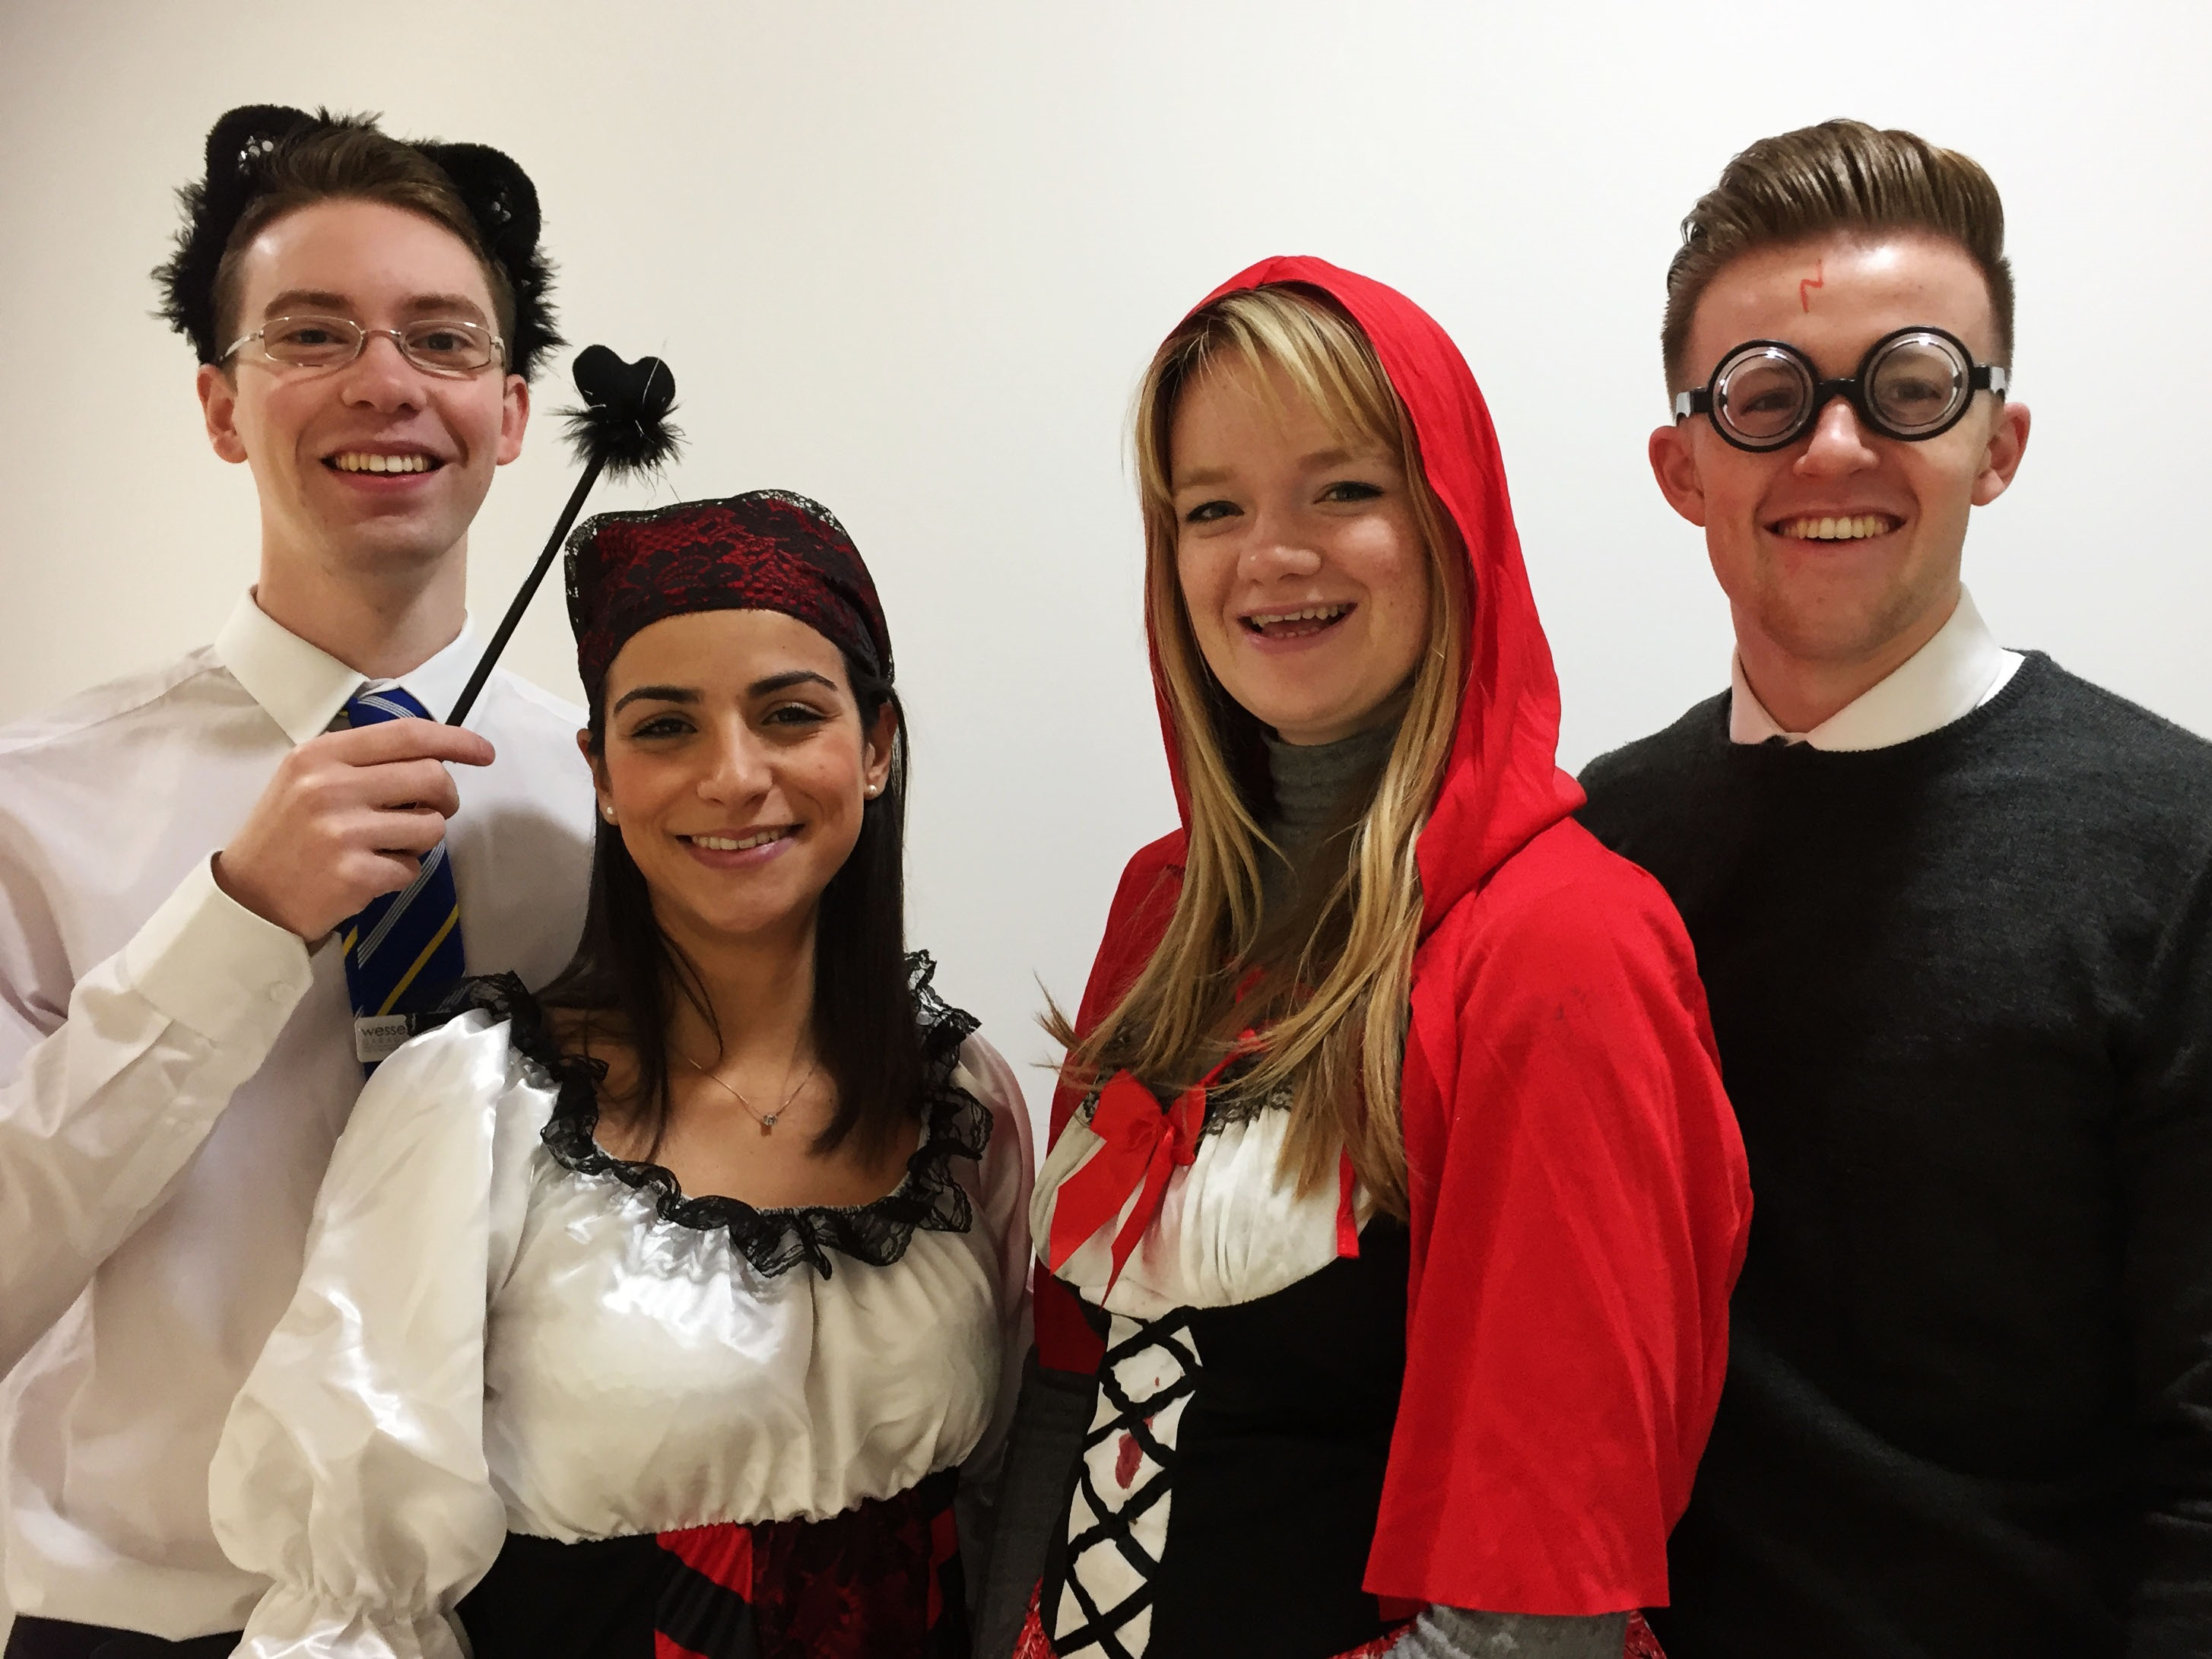 (From left to right) Wessex Garages' staff members, IT Assistant, Dan Stevens and Marketing Executives, Lara Tetlow, Silvia Siddi and Joel Clark, get ready for the Halloween Party.